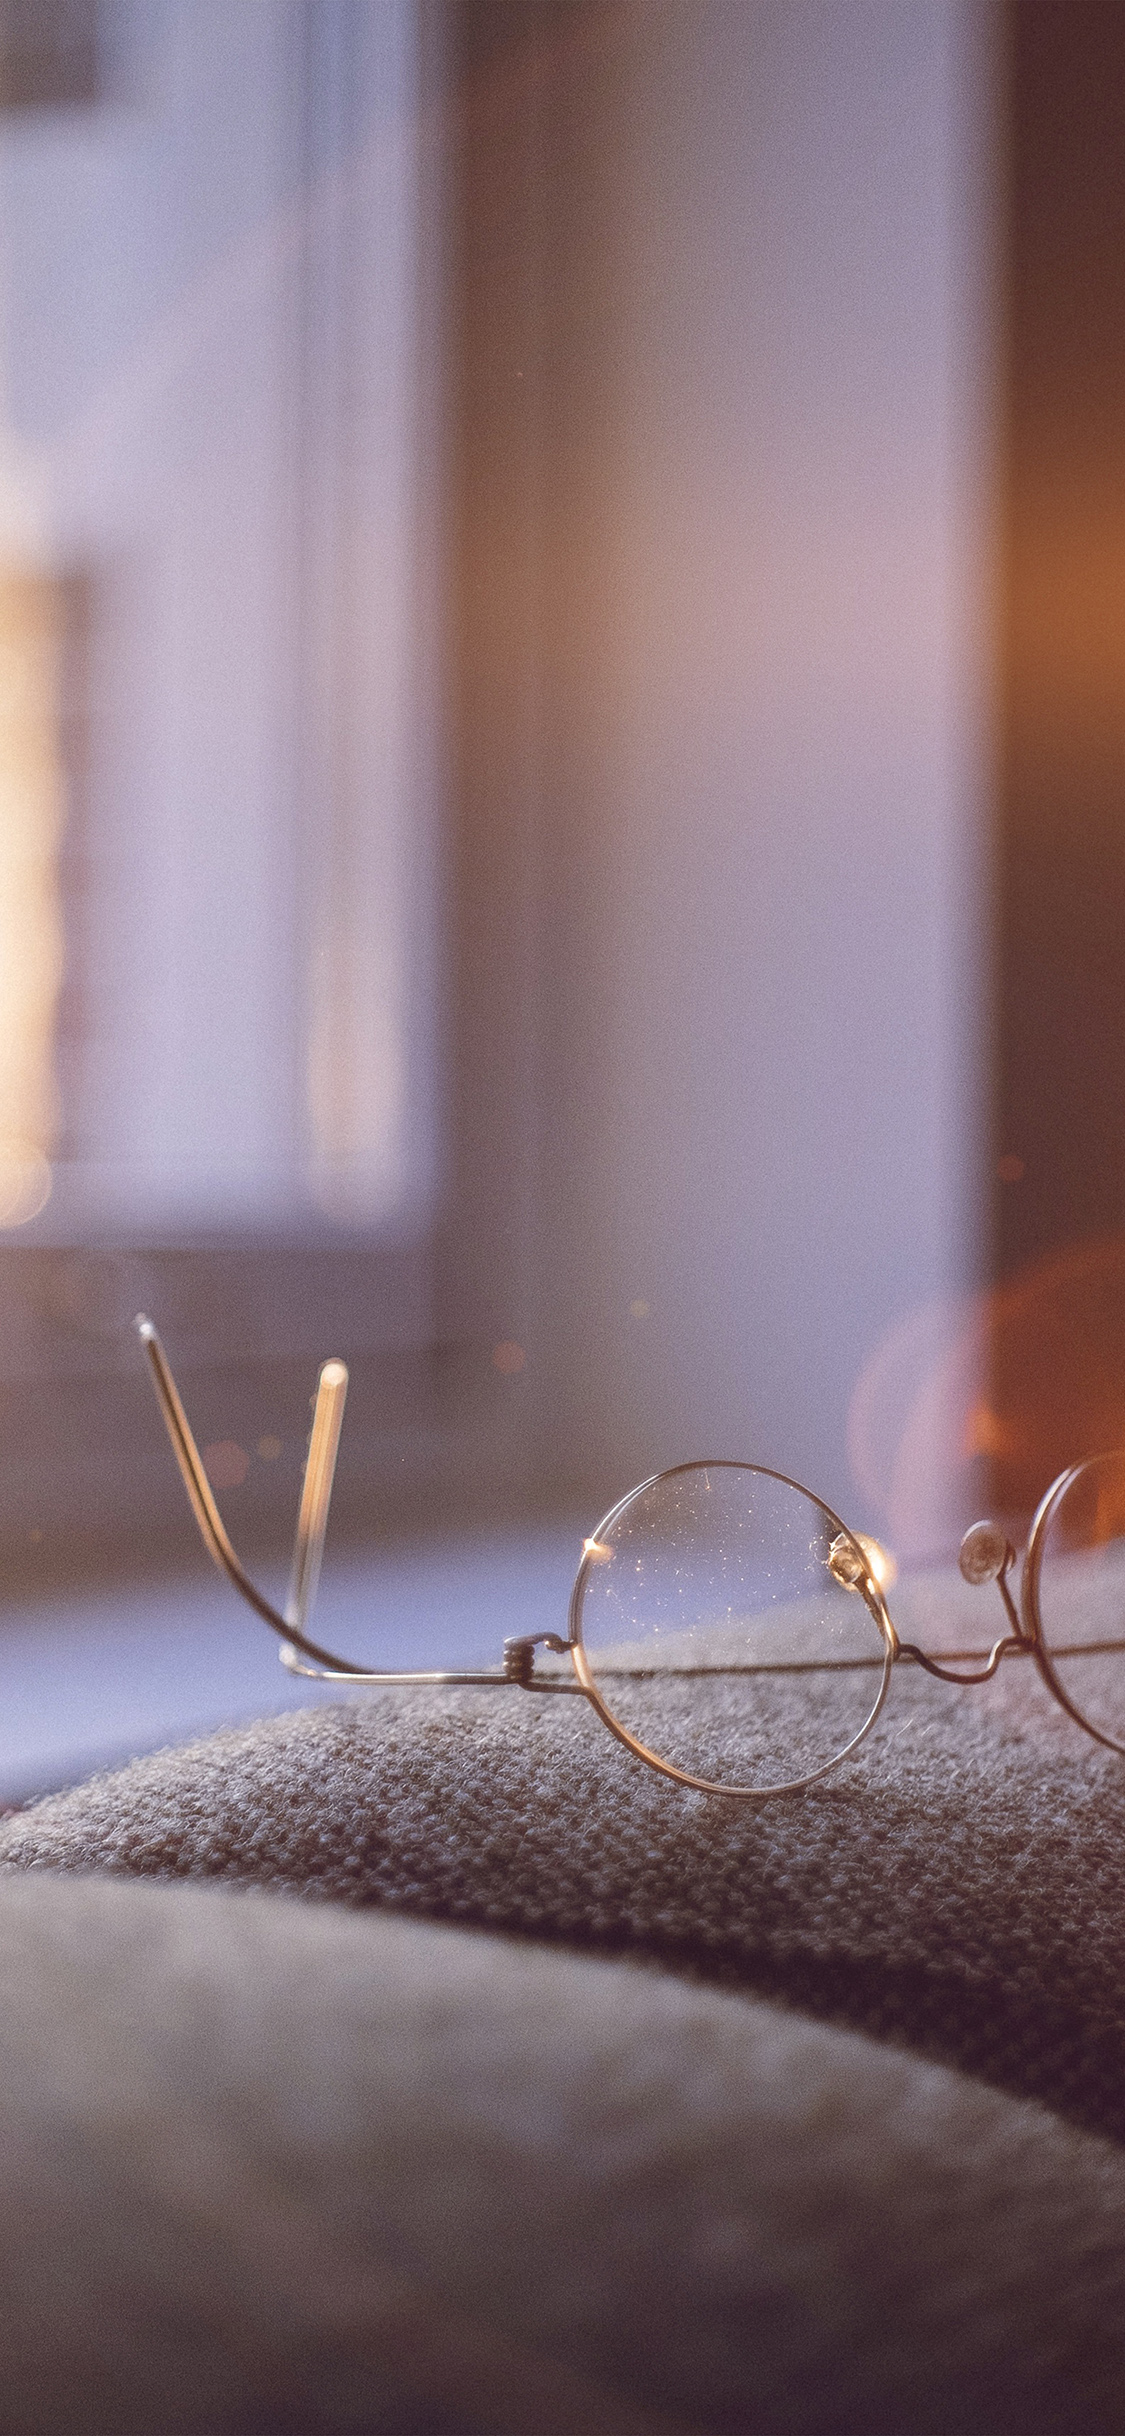 iPhoneXpapers.com-Apple-iPhone-wallpaper-nh01-lonely-quiet-day-home-glasses-sunlight-flare